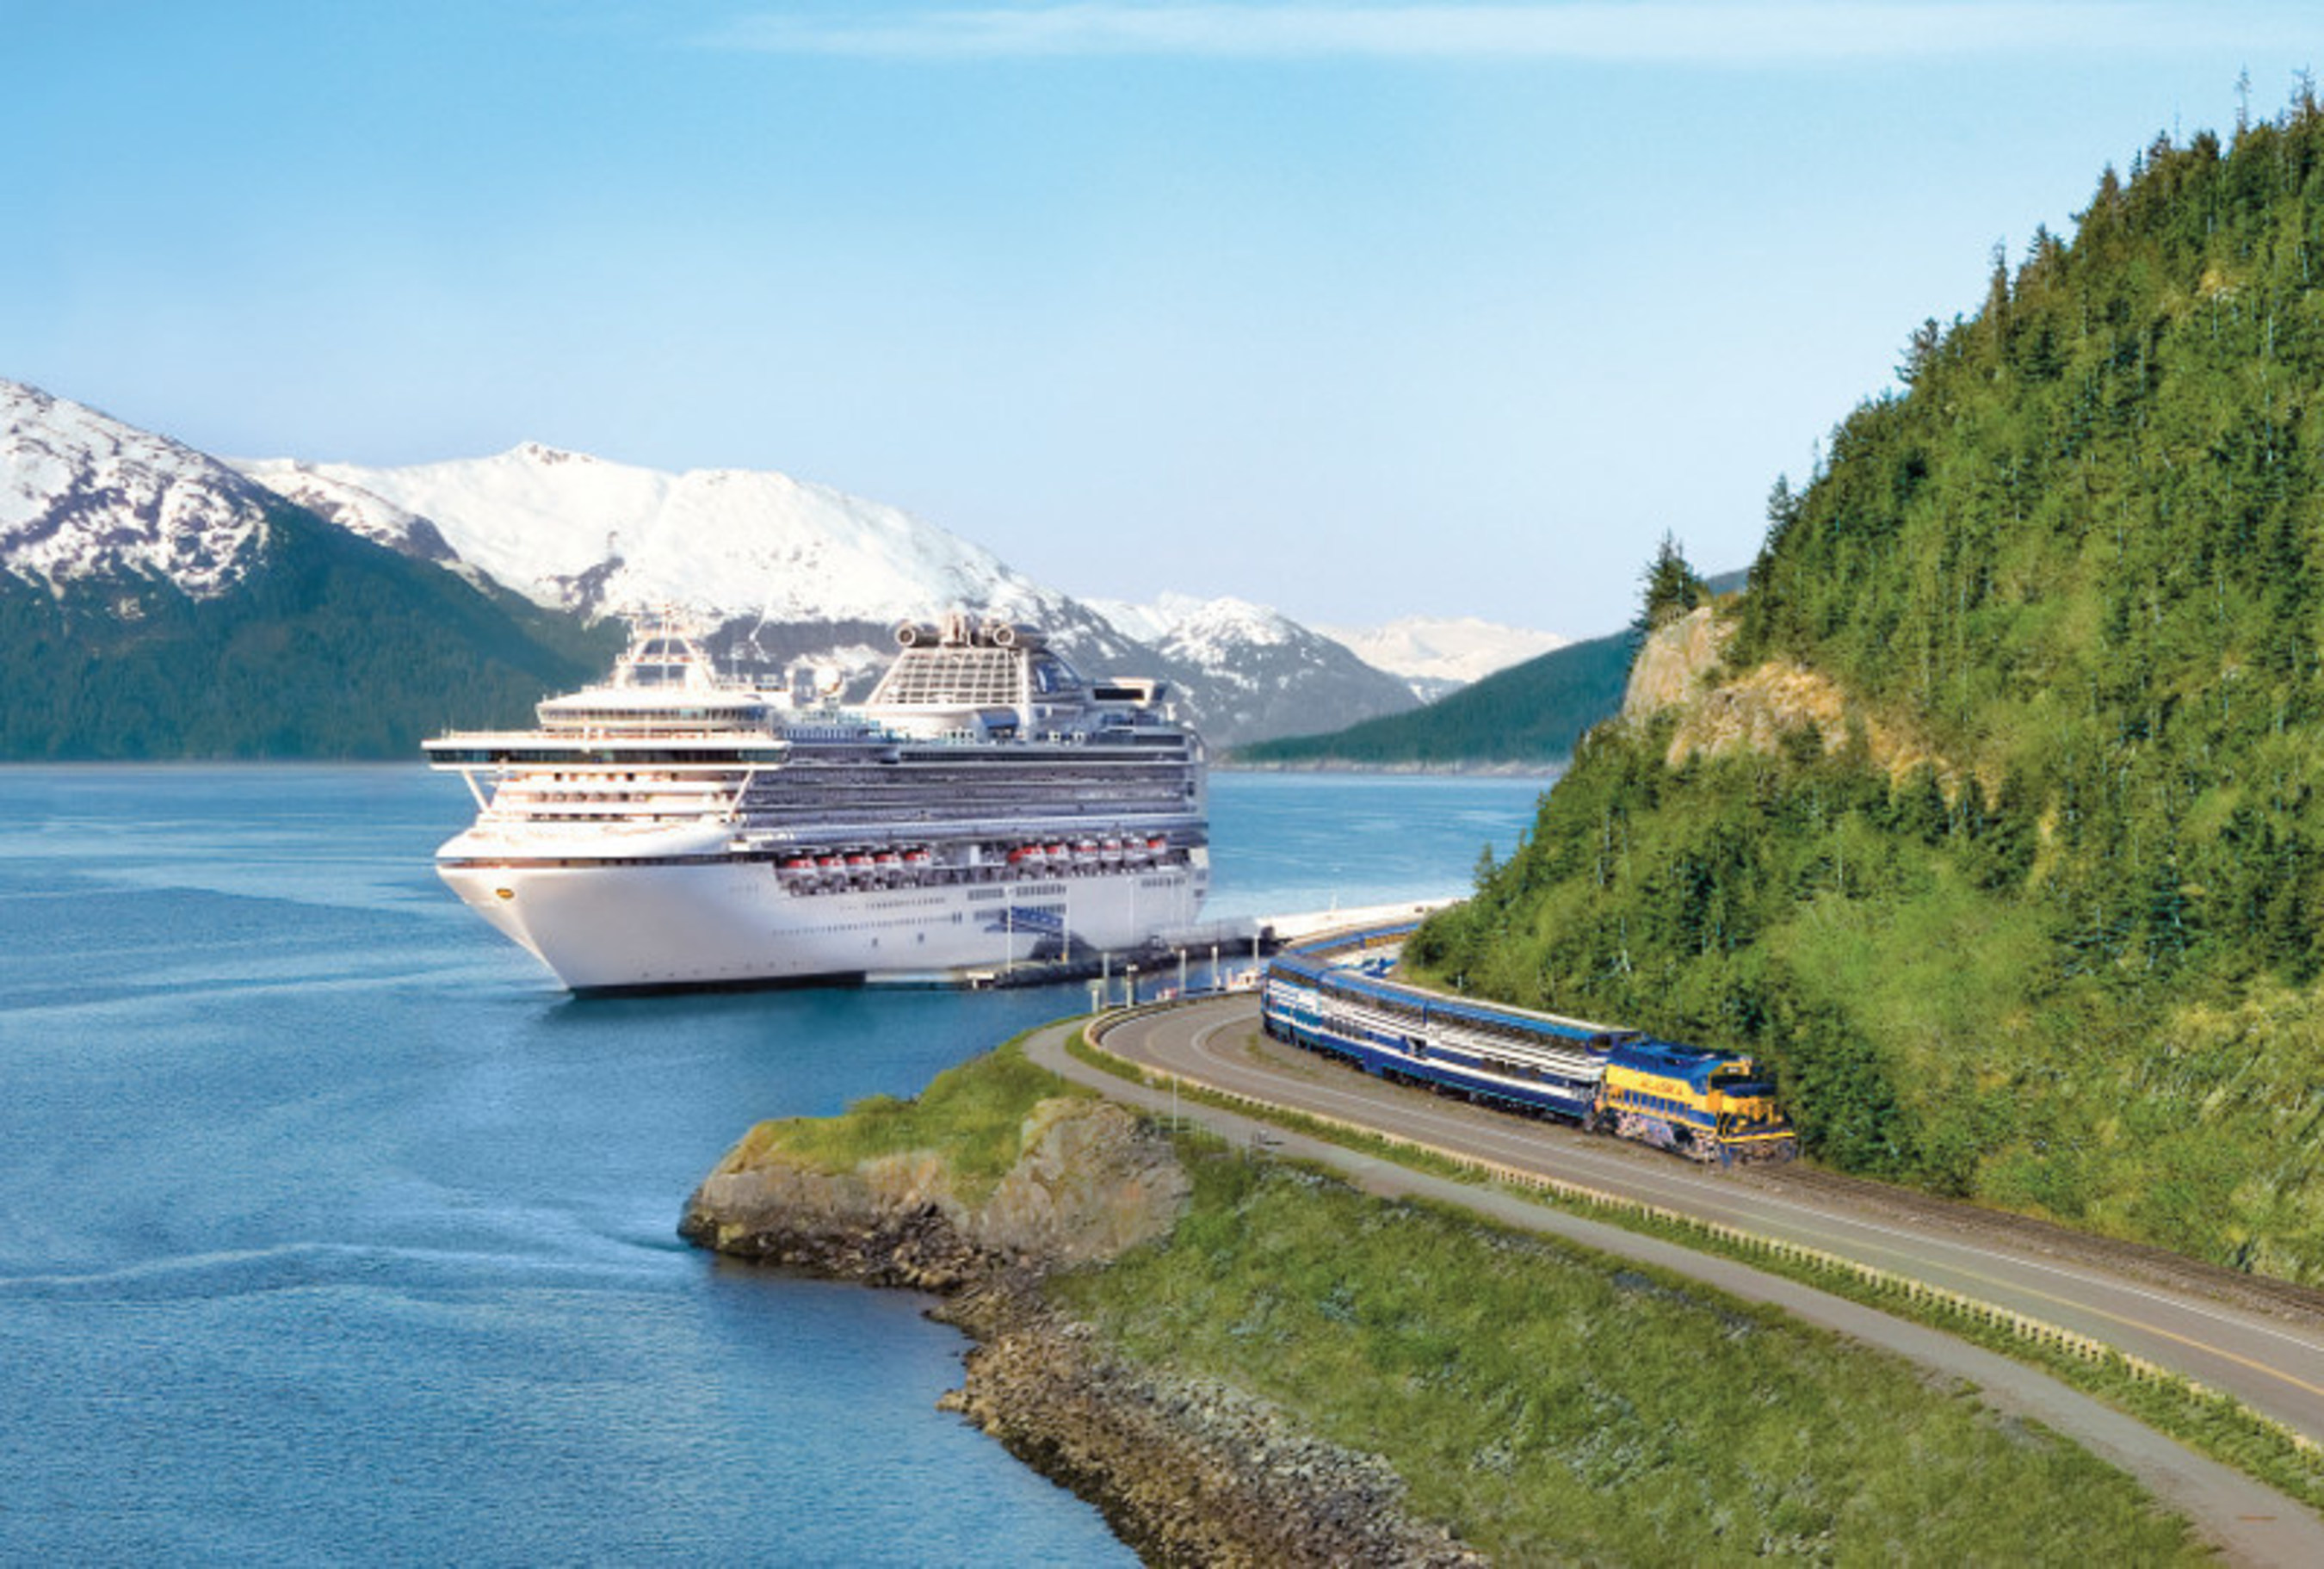 Princess Cruises Announces Largest Alaska Deployment Ever in 2018.